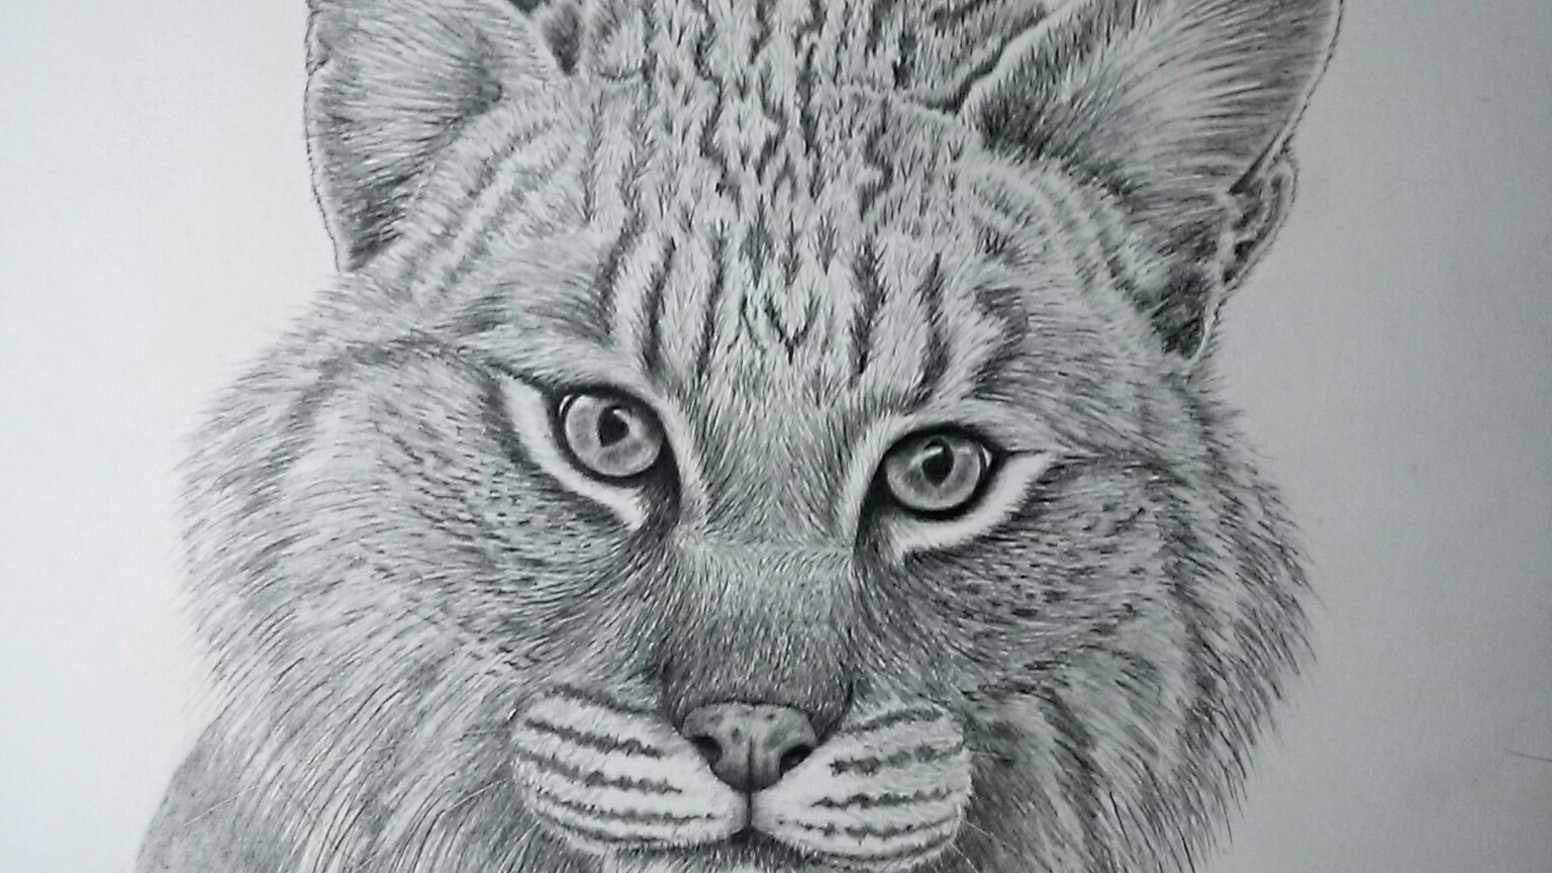 Wildlife & Nature Drawings Starting at $5! by Tammy Liu